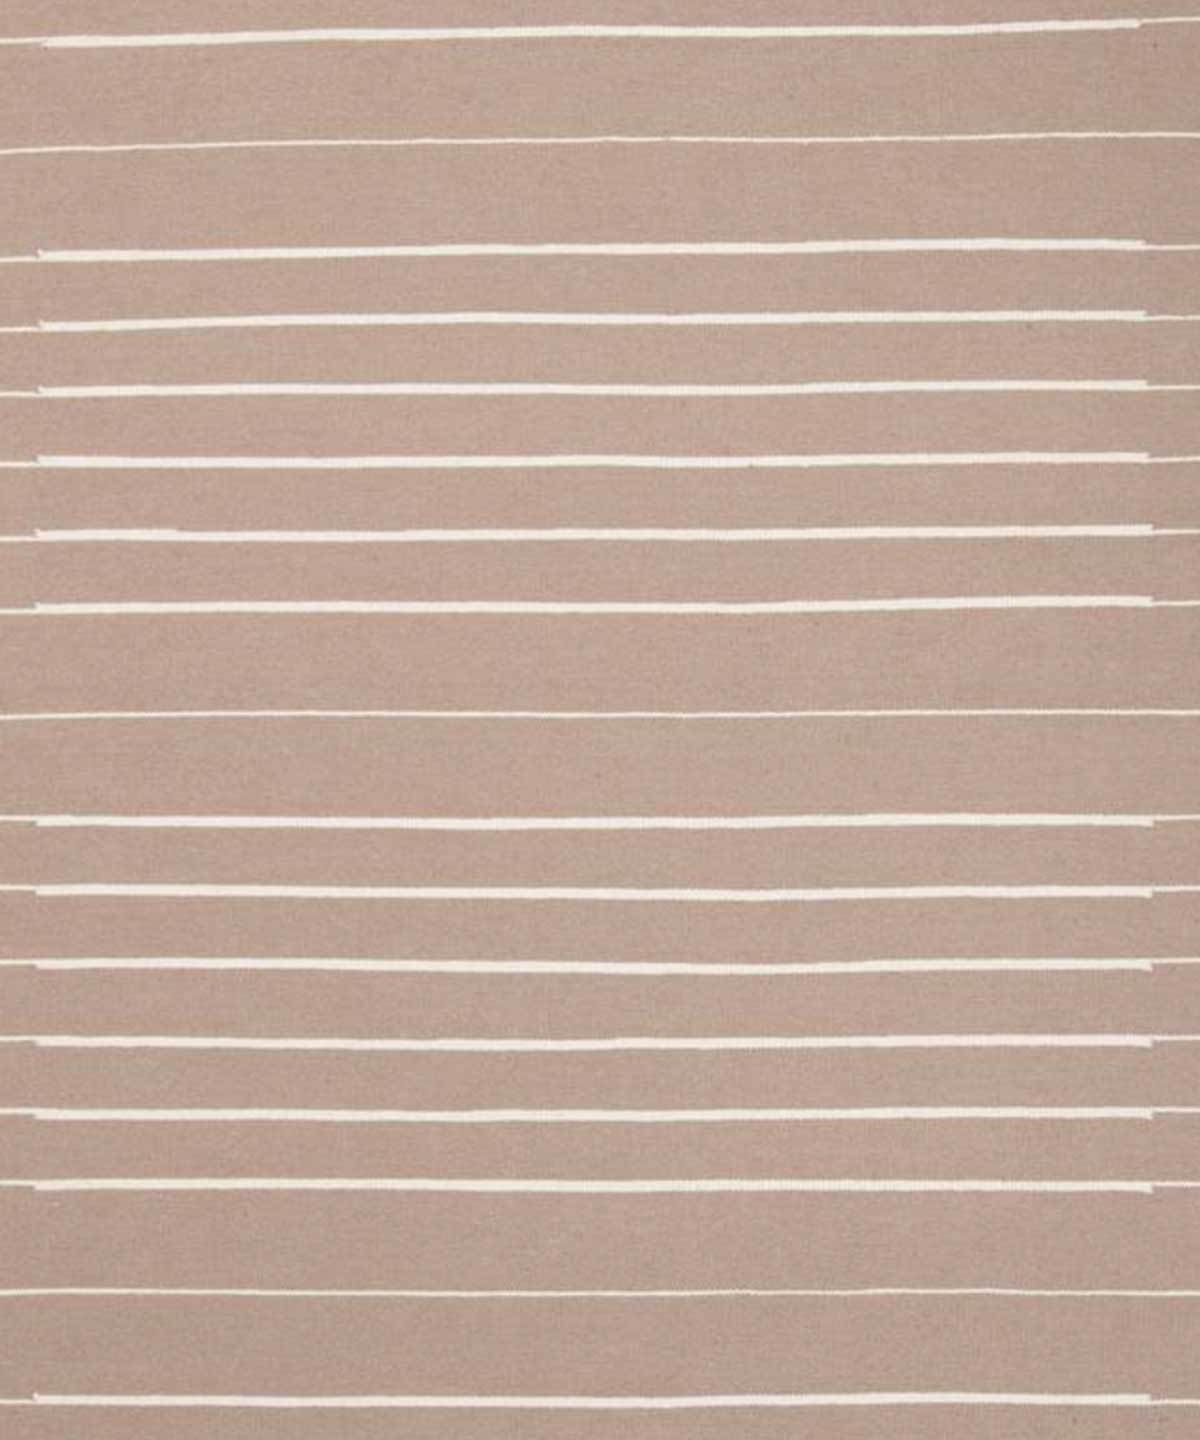 Piano Rug in Rose by Loloi | TRNK